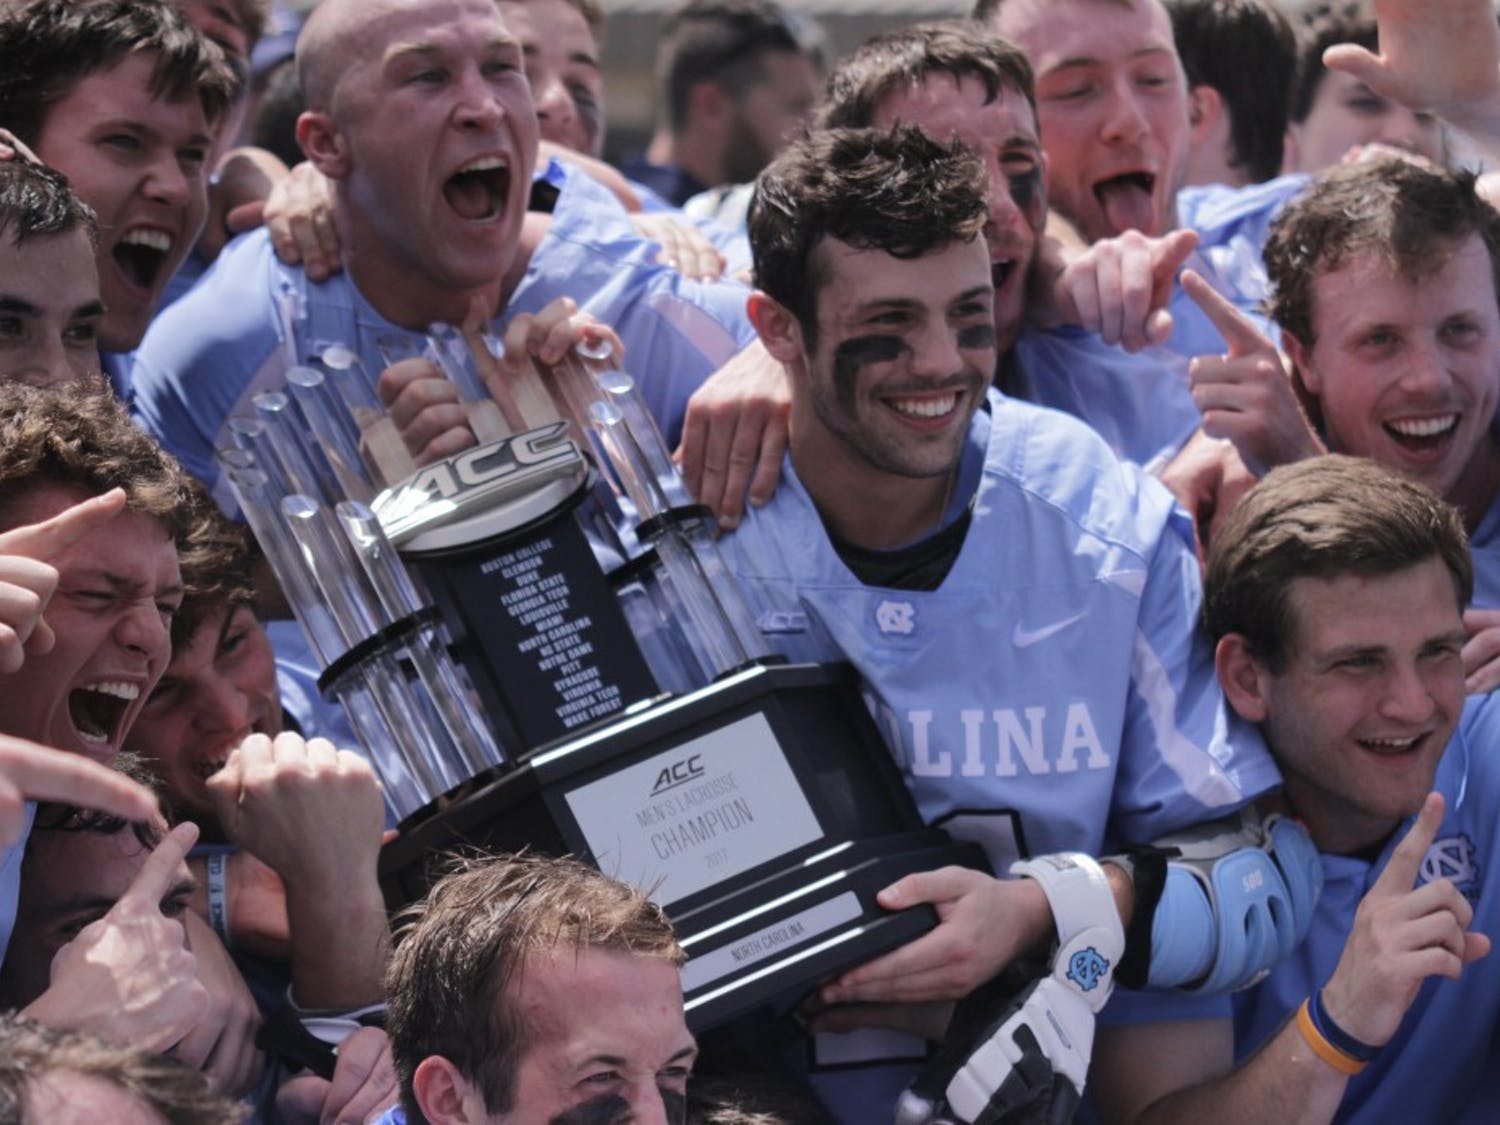 With a 14-10 win over Notre Dame on Sunday afternoon to win the ACC Championship, UNC collected the program's ninth conference championship.